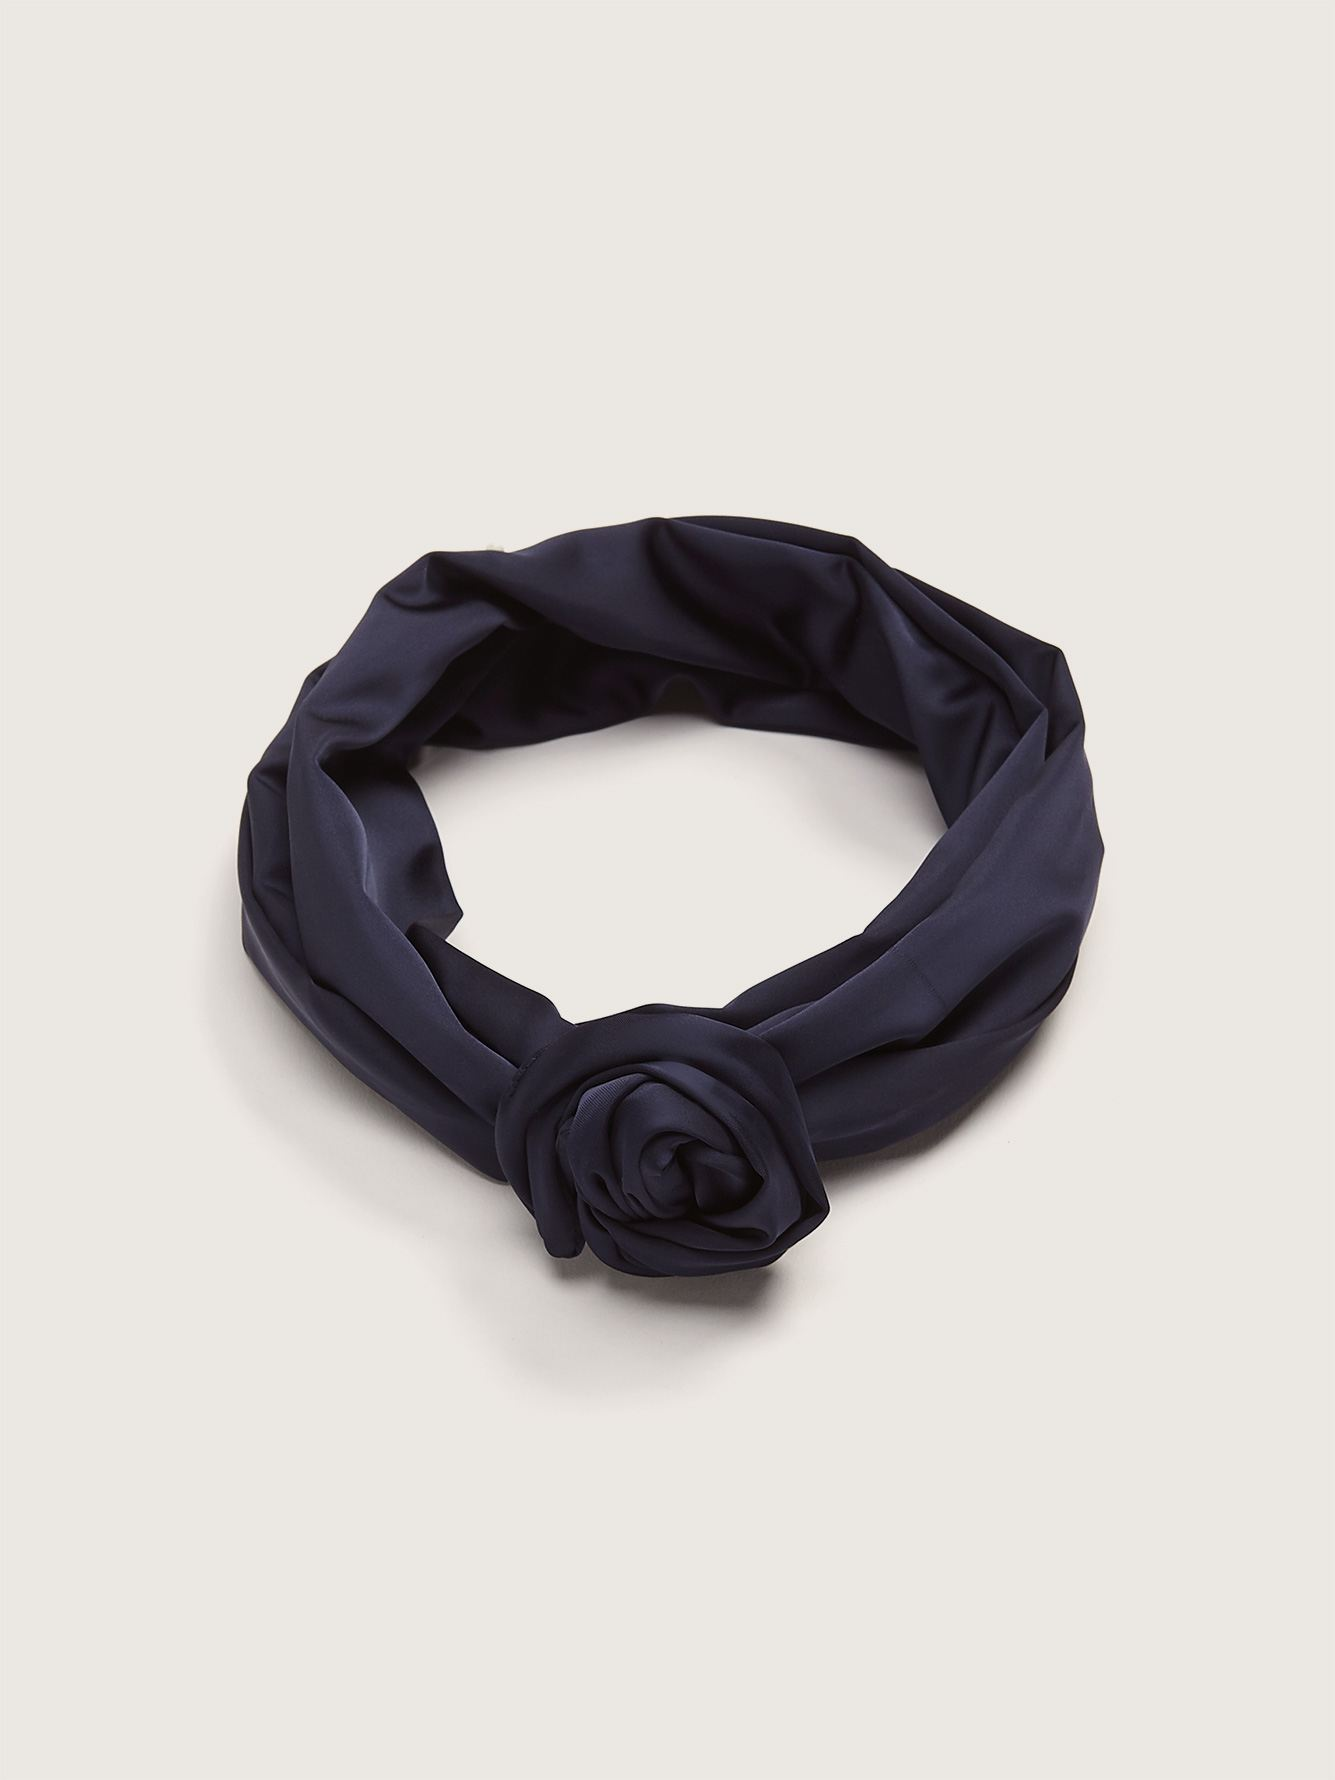 XL Twisted Satin Headband with Integrated Metal Rod - Gibou